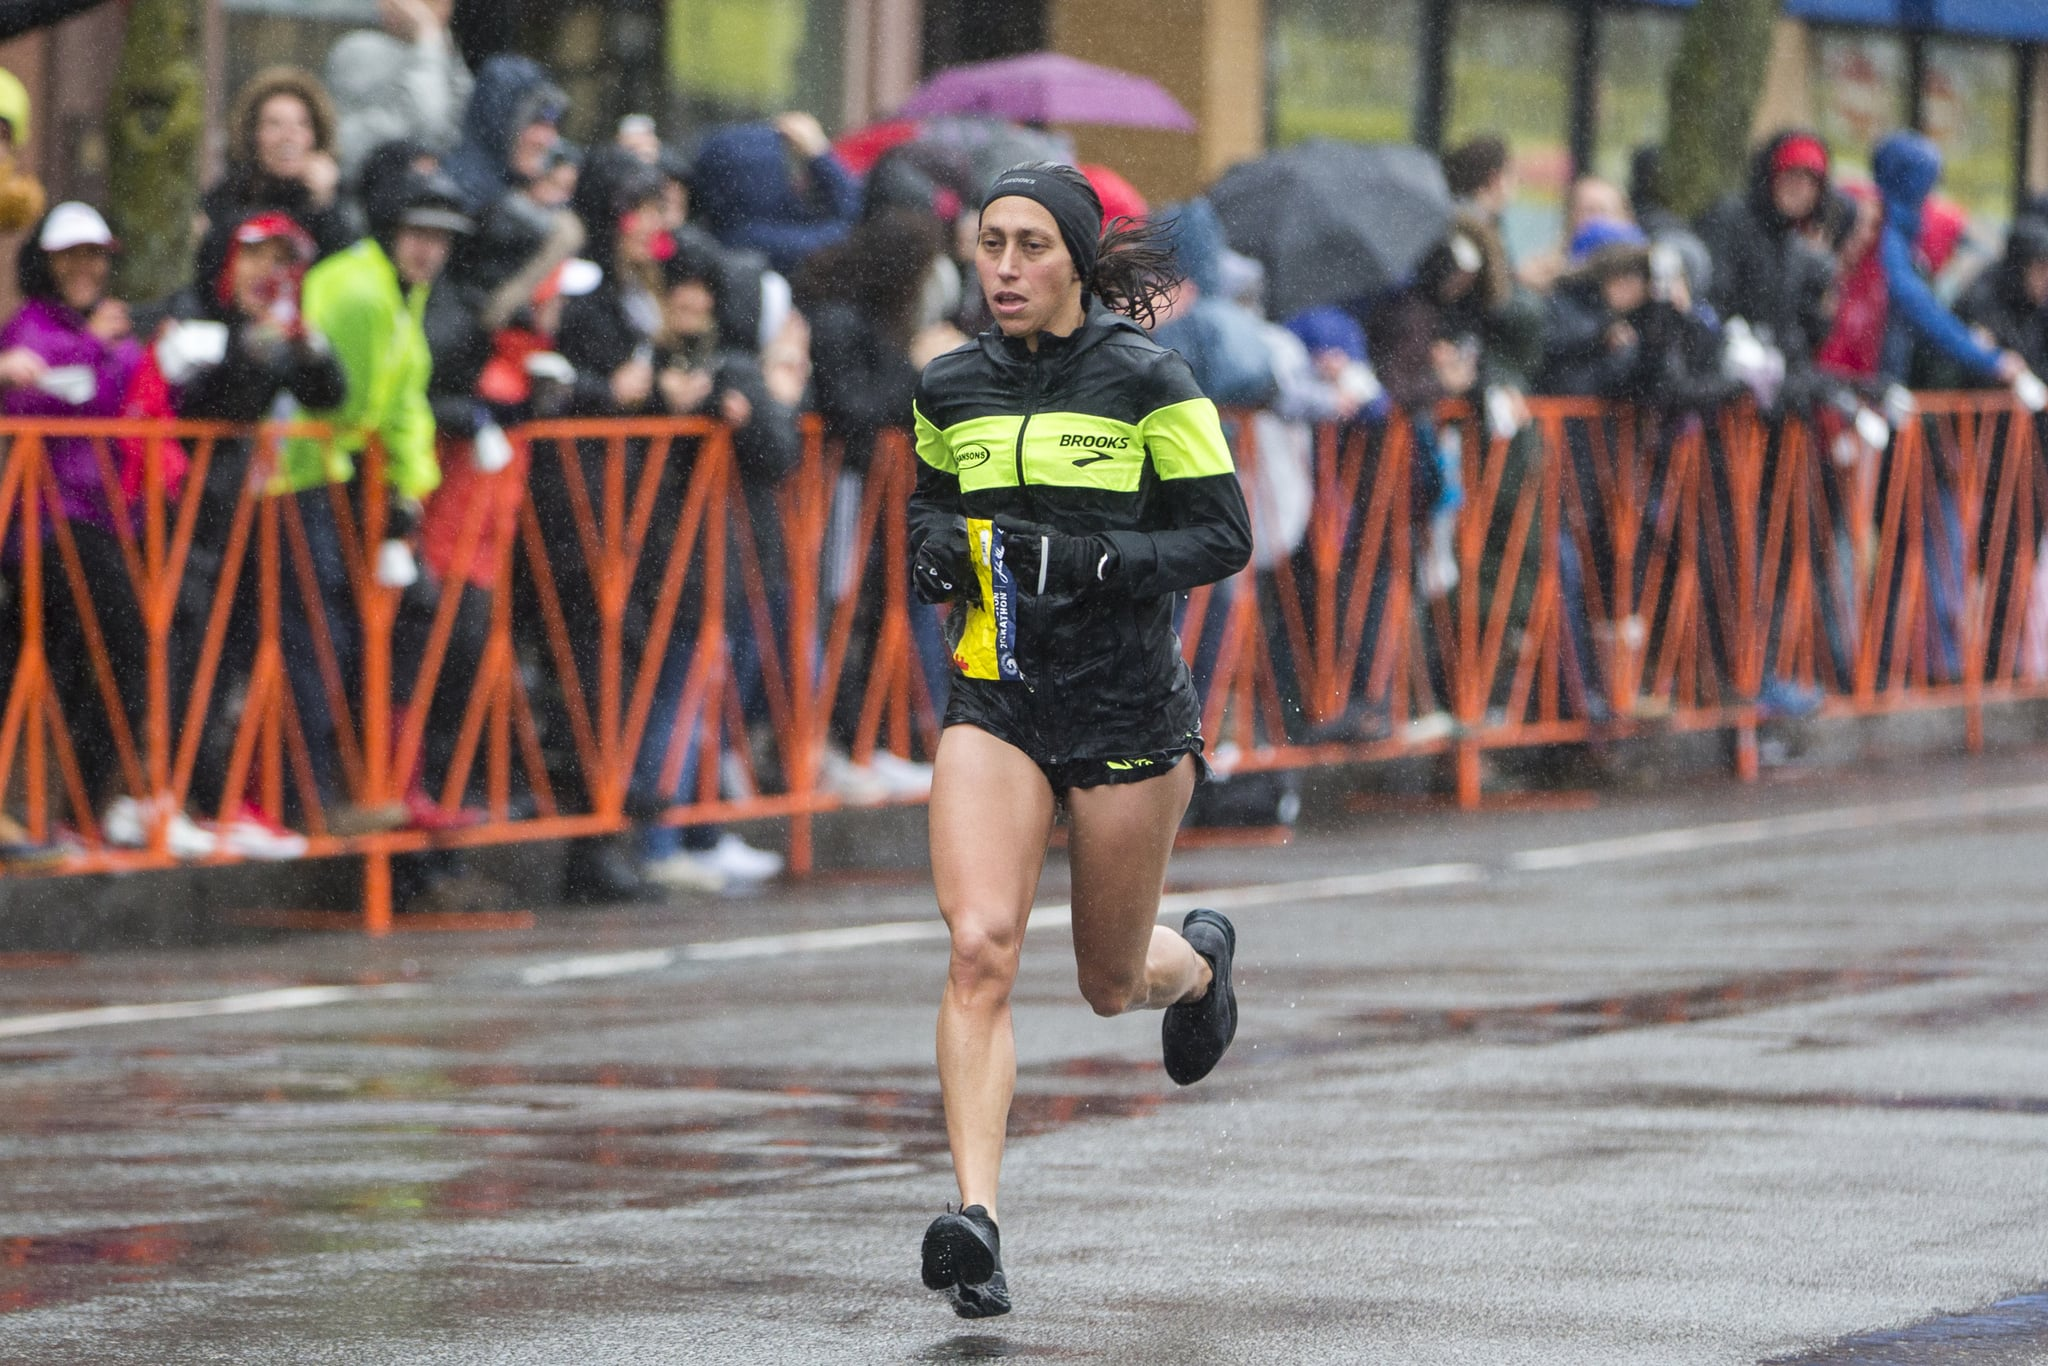 BROOKLINE, MA - APRIL 16:  Desiree Linden approaches the 24 mile marker of the 2018 Boston Marathon on April 16, 2018 in Brookline, Massachusetts. Linden became the first American winner since 1985 with an unofficial time of 2:39:54. (Photo by Scott Eisen/Getty Images)